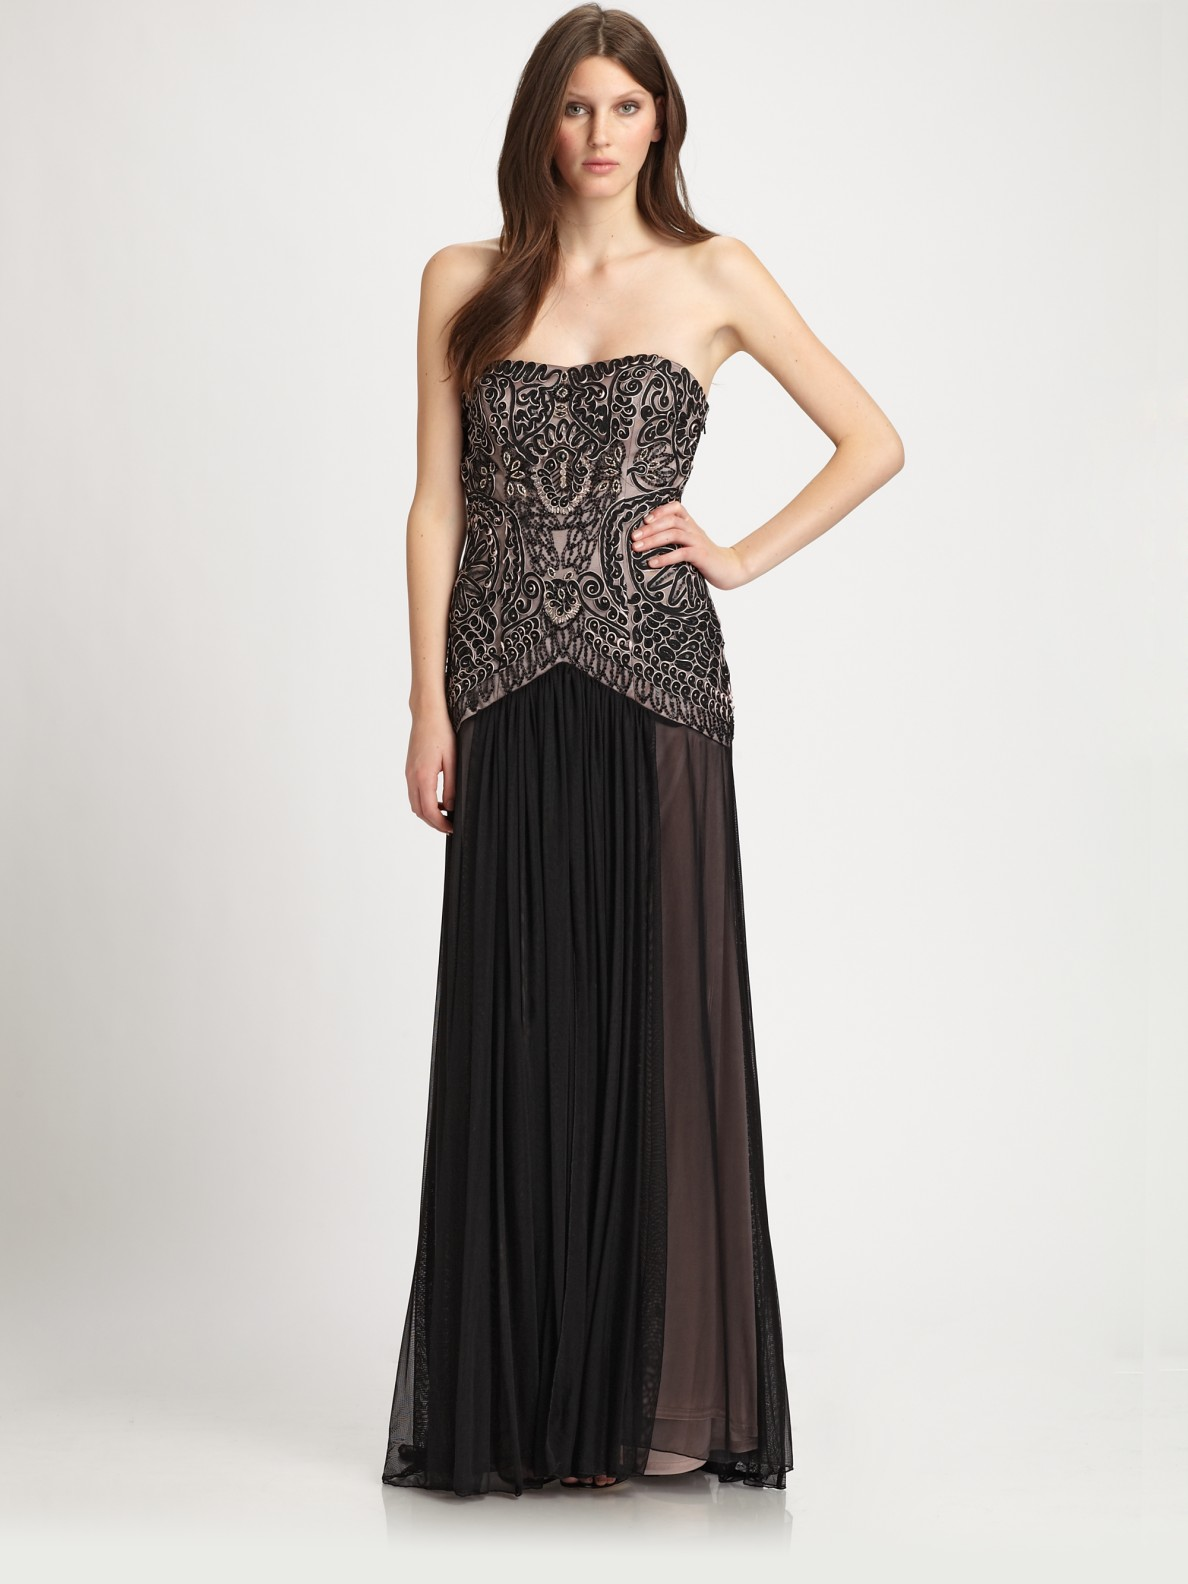 Lyst - Sue Wong Strapless Gown in Black